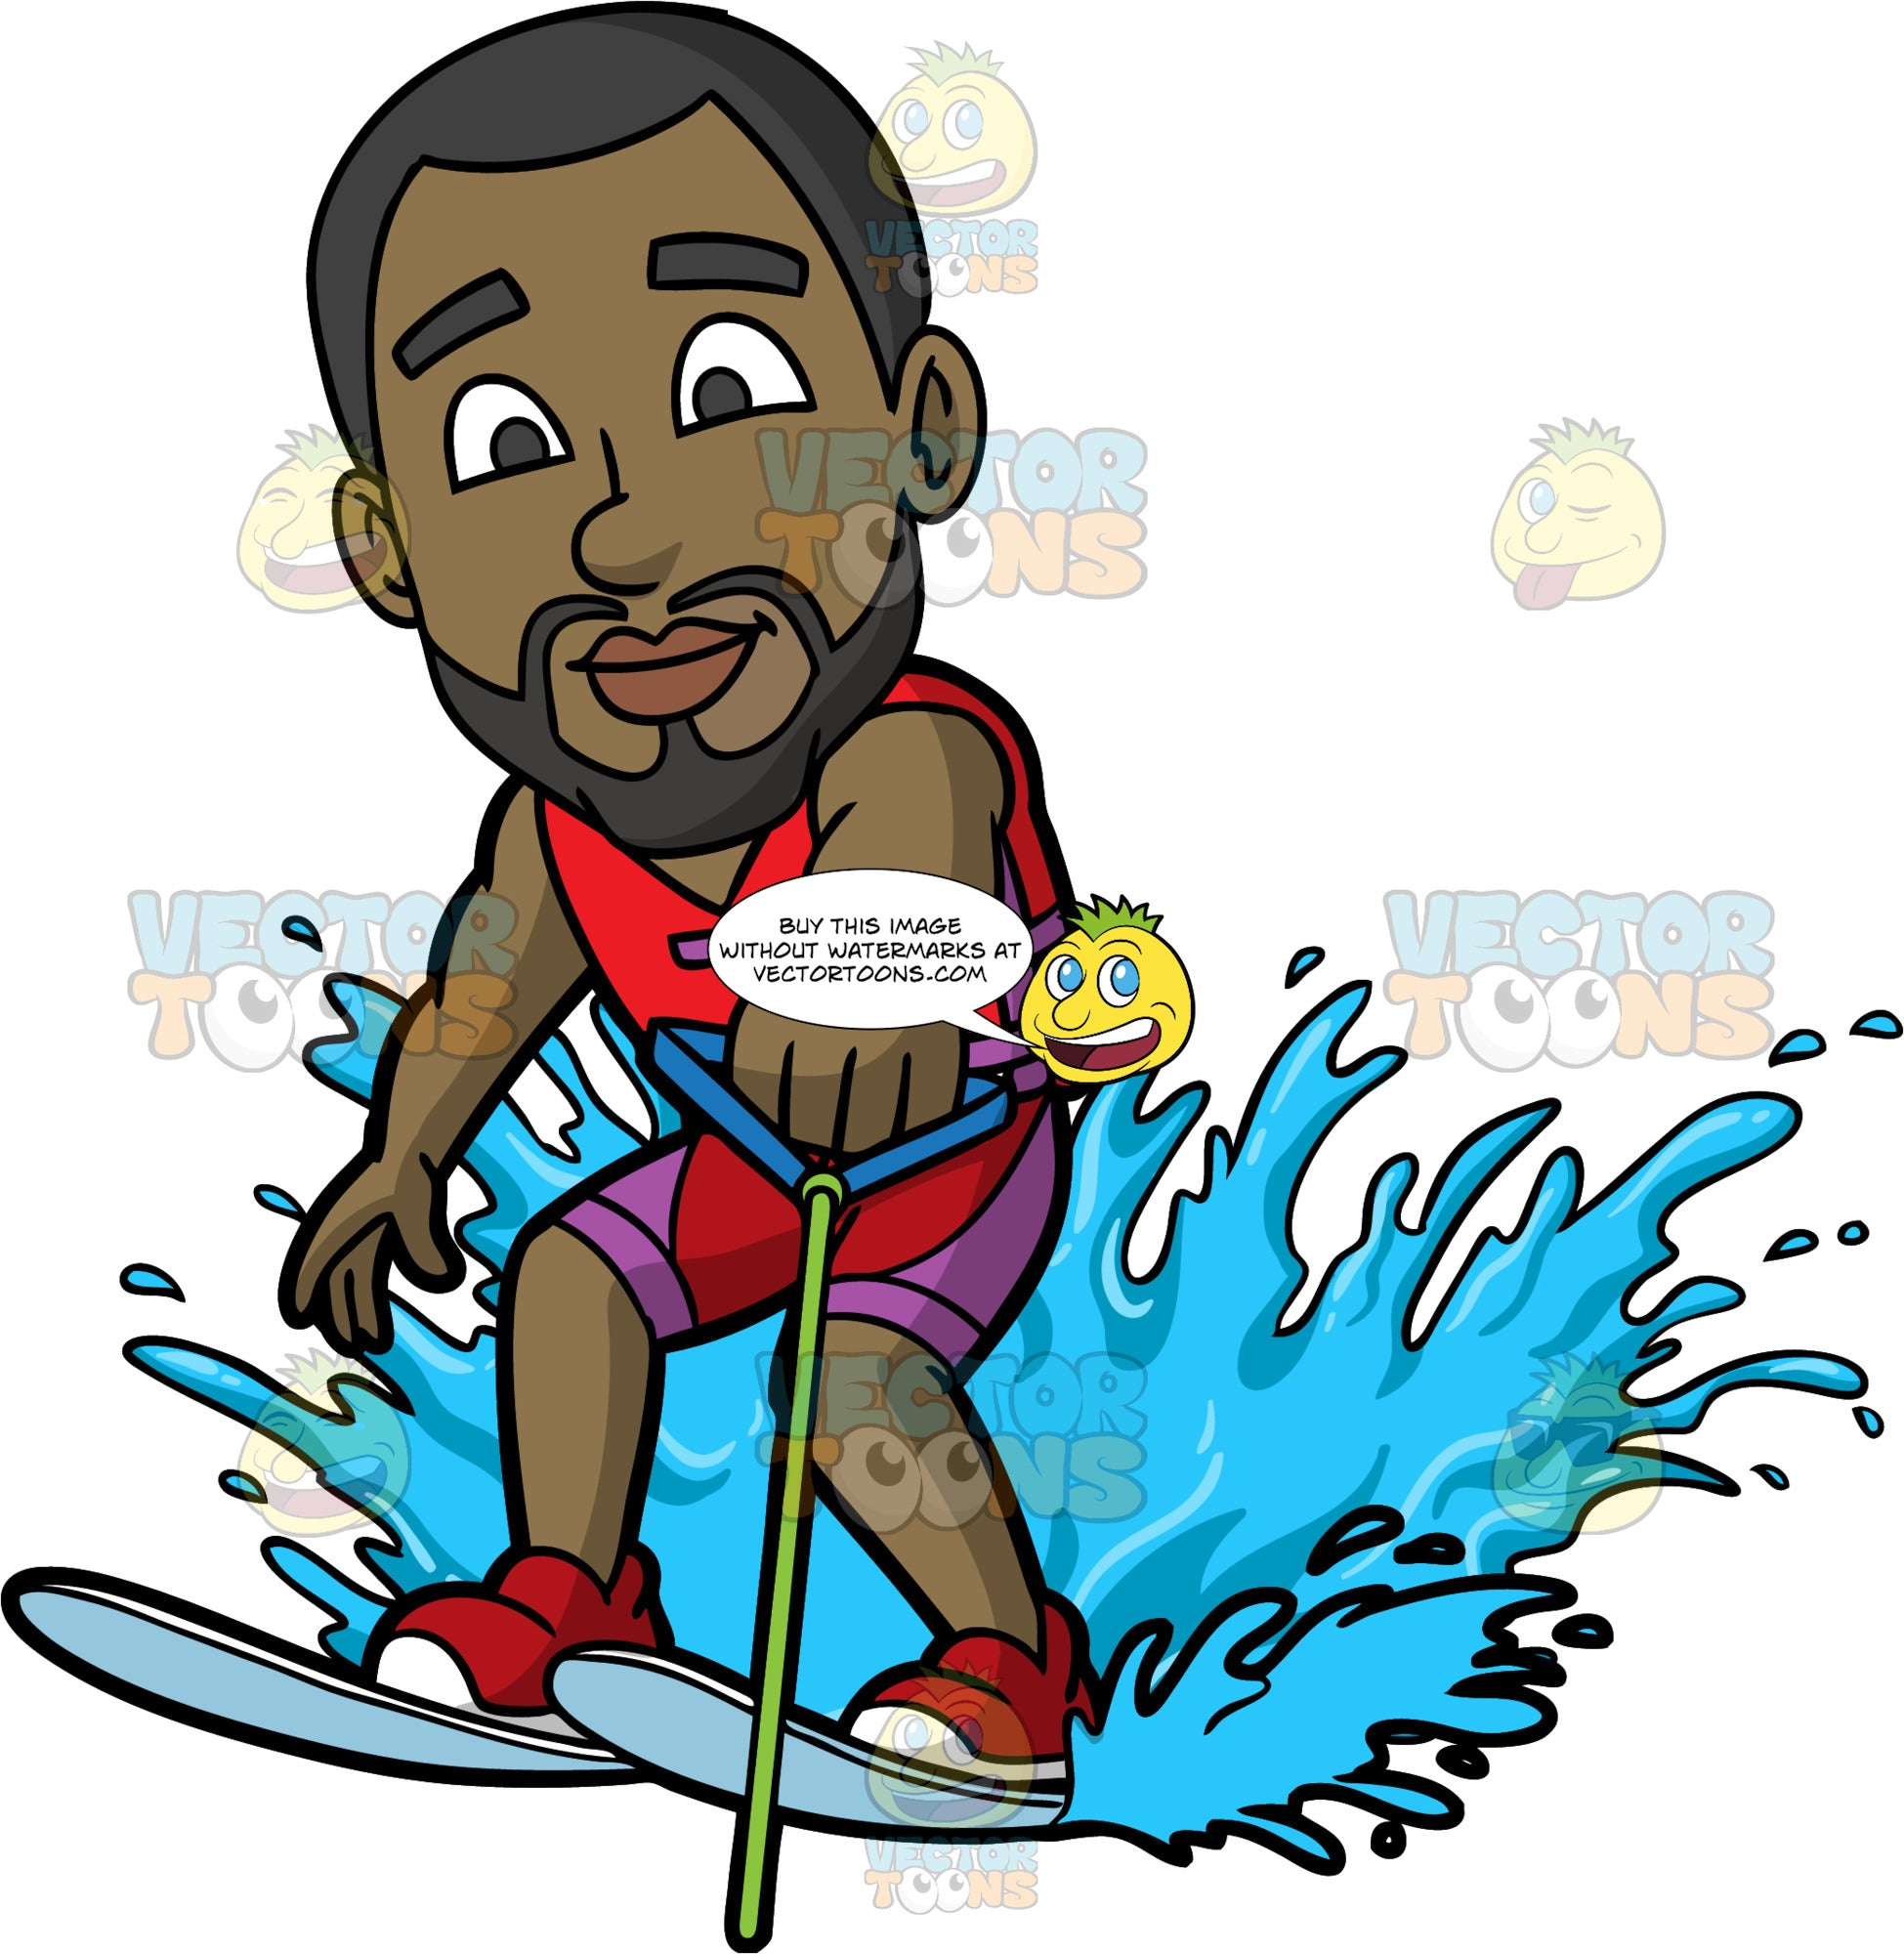 Calvin Being Pulled Behind A Boat On Water Skiis. A black man with a beard, wearing purple and red bathing shorts, and a red life jacket, holding onto a blue handle as he skims along the surface of the water on water skis